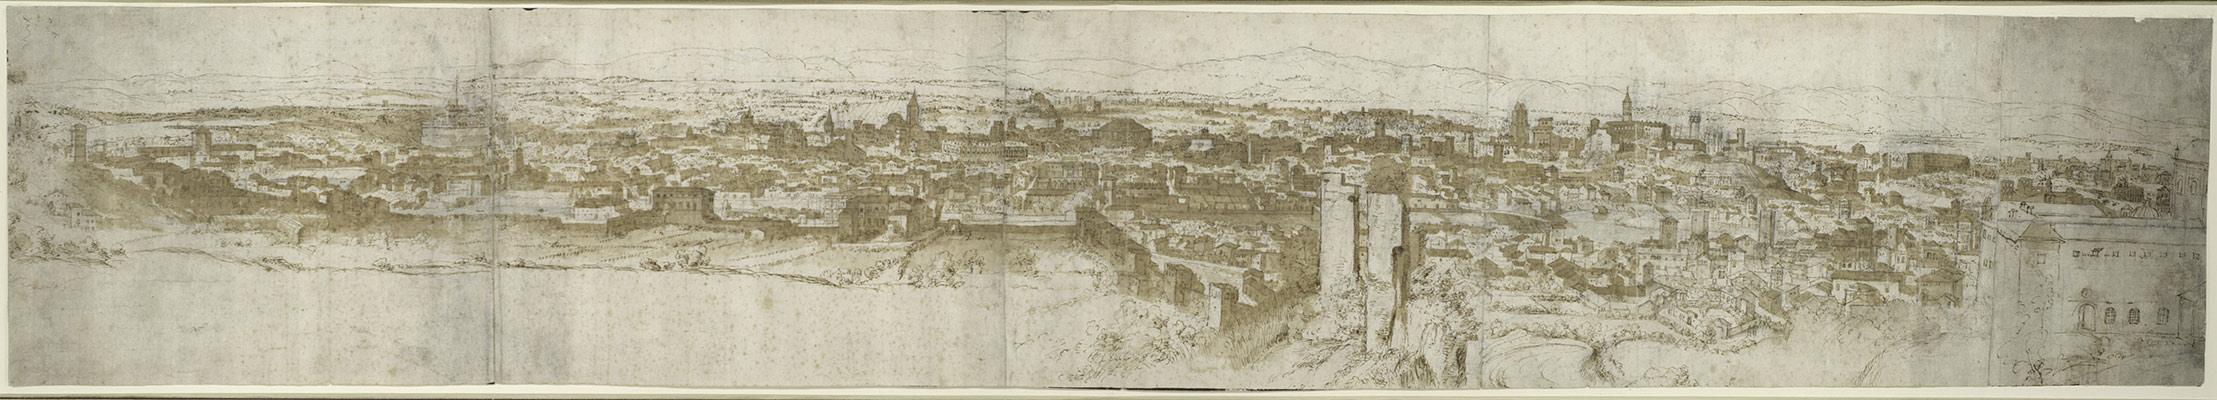 dutch and flemish artists in rome essay heilbrunn view of rome from the janiculum in the south west verso sketch of